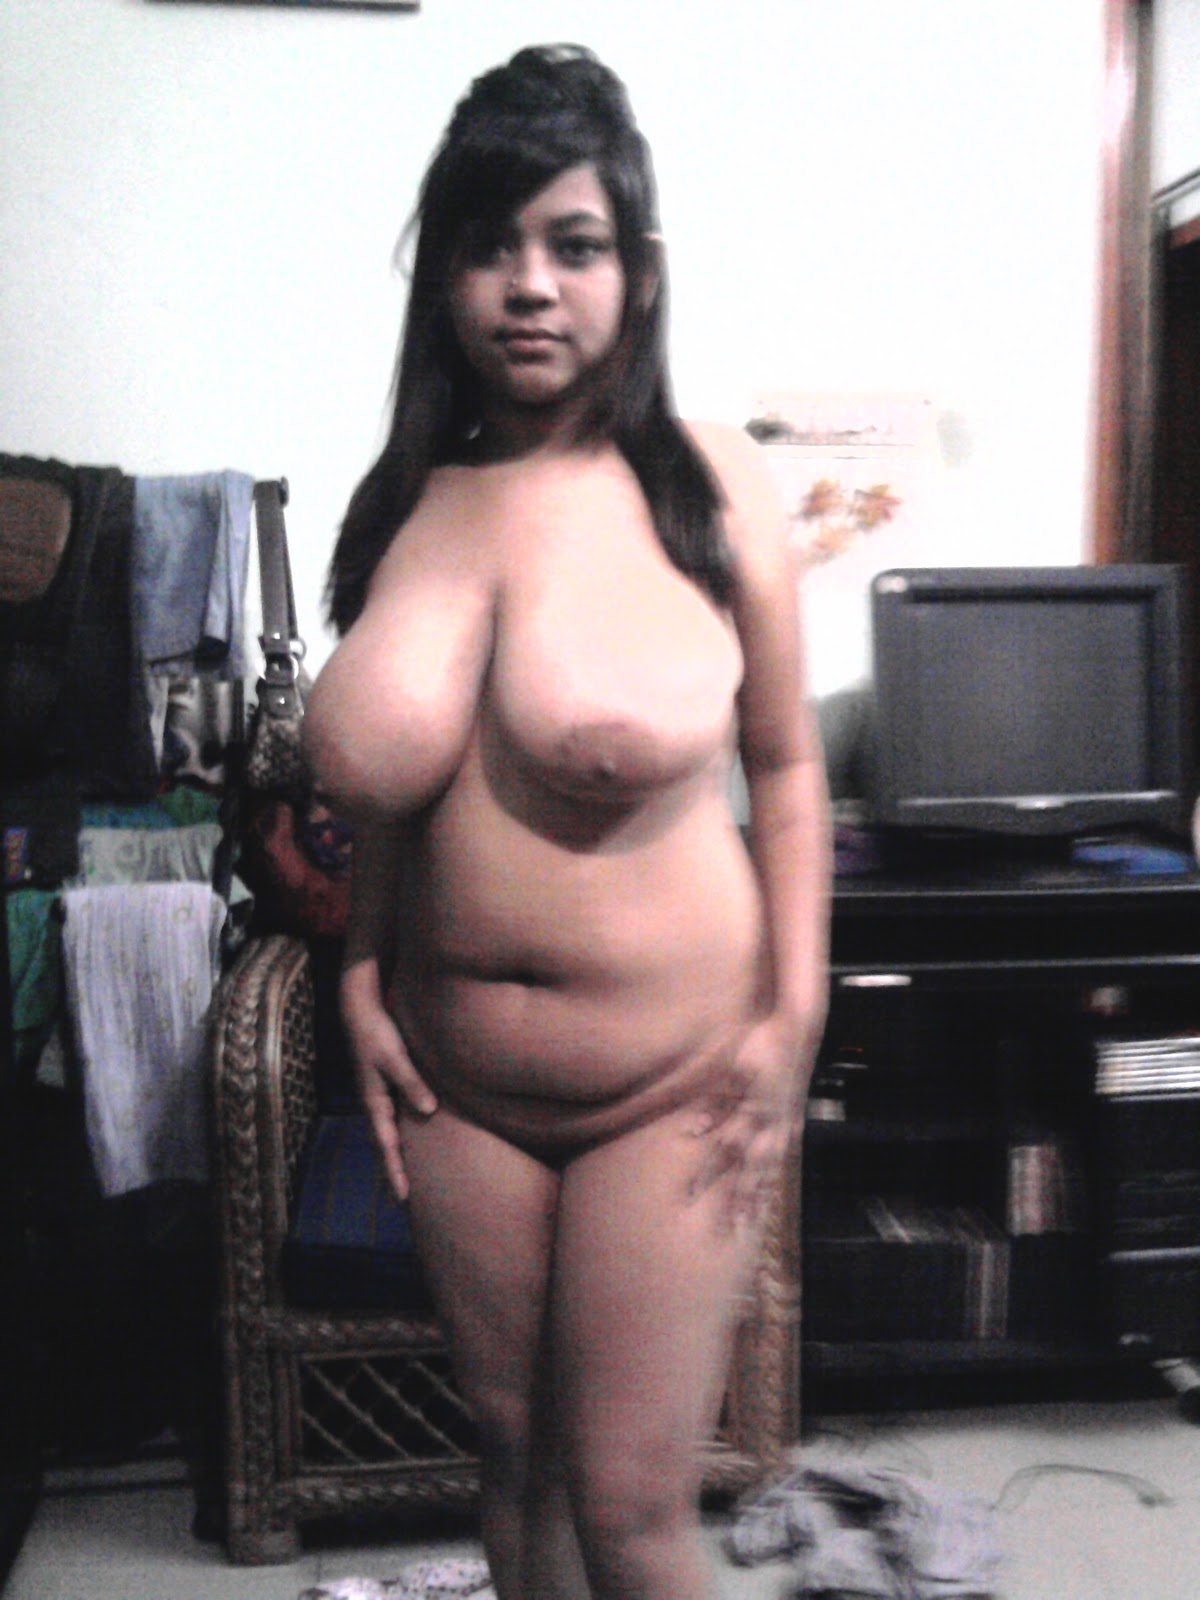 bangladeshi young girls naked photo